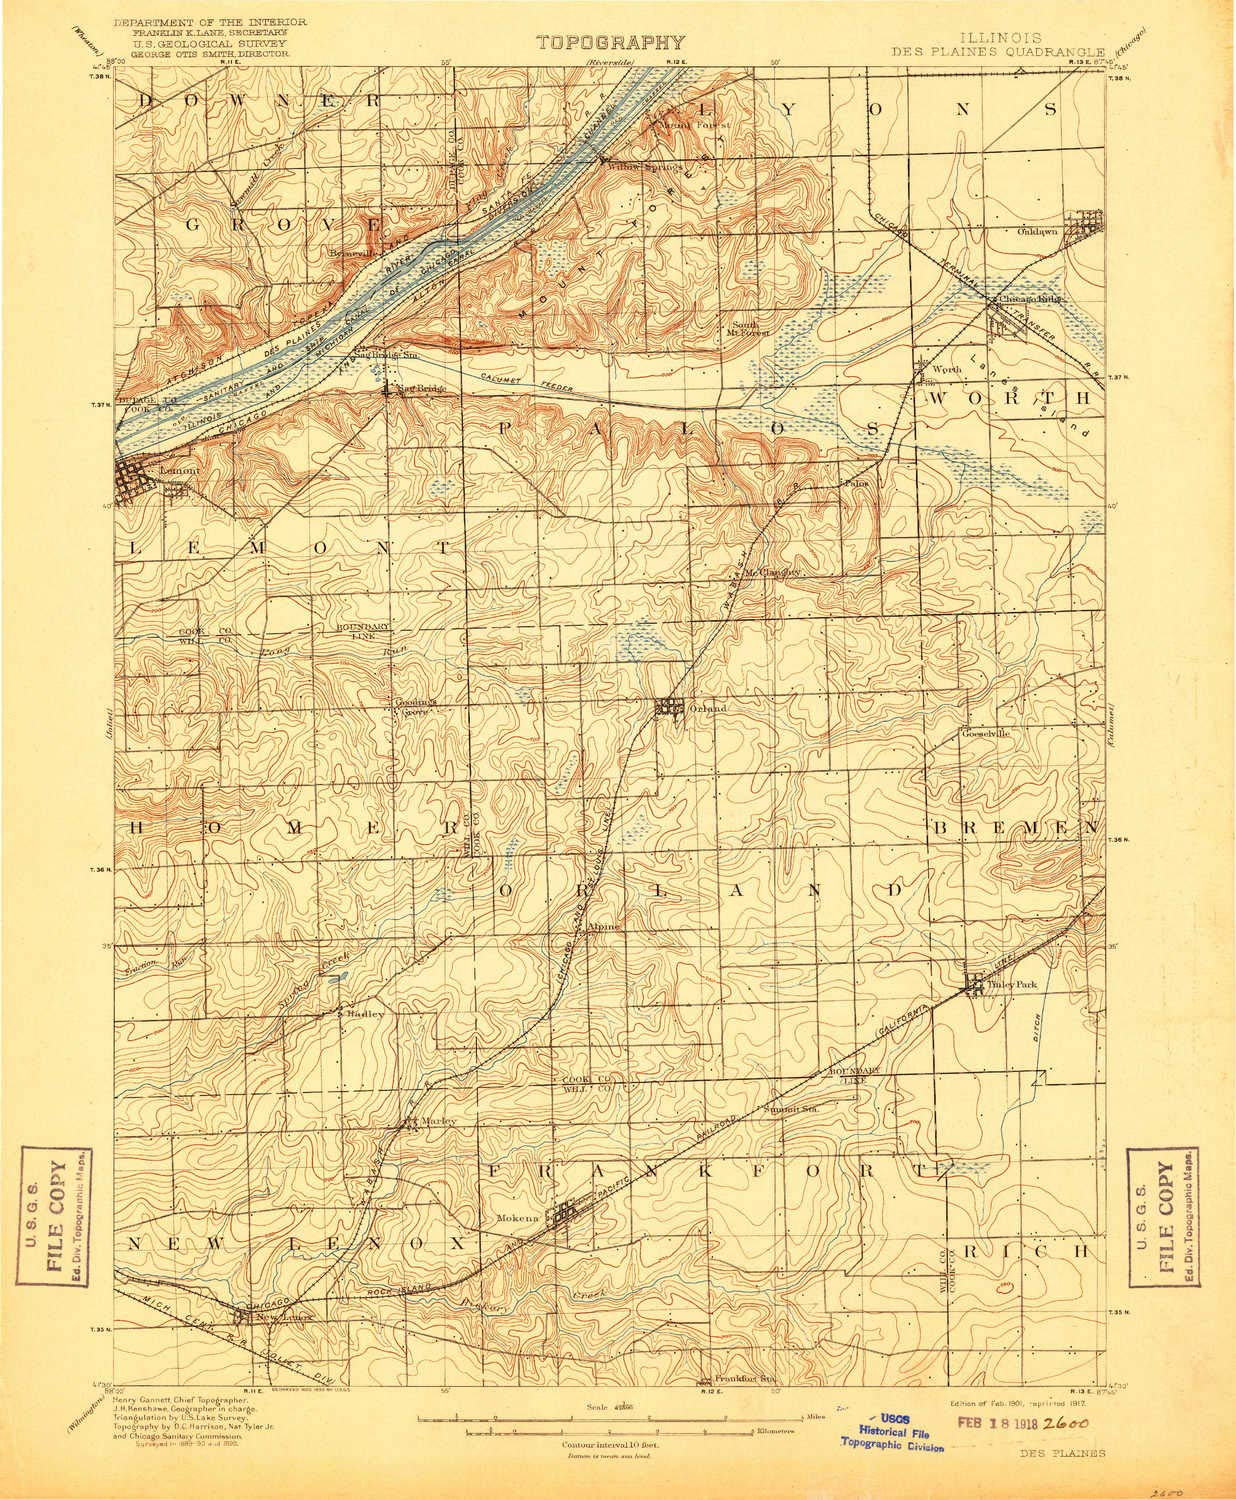 Amazon.com : YellowMaps Des Plaines IL topo map, 1:62500 ... on west chicago il zoning map, lagrange park map, glendale hts map, river grove map, kewanee map, duquoin map, amboy map, mt prospect map, jefferson park map, skokie river map, naperville north high school map, chicago hts map, homewood map, worth map, east loop map, belvidere map, deerfield map, university of illinois at chicago map, cicero illinois map, schererville map,